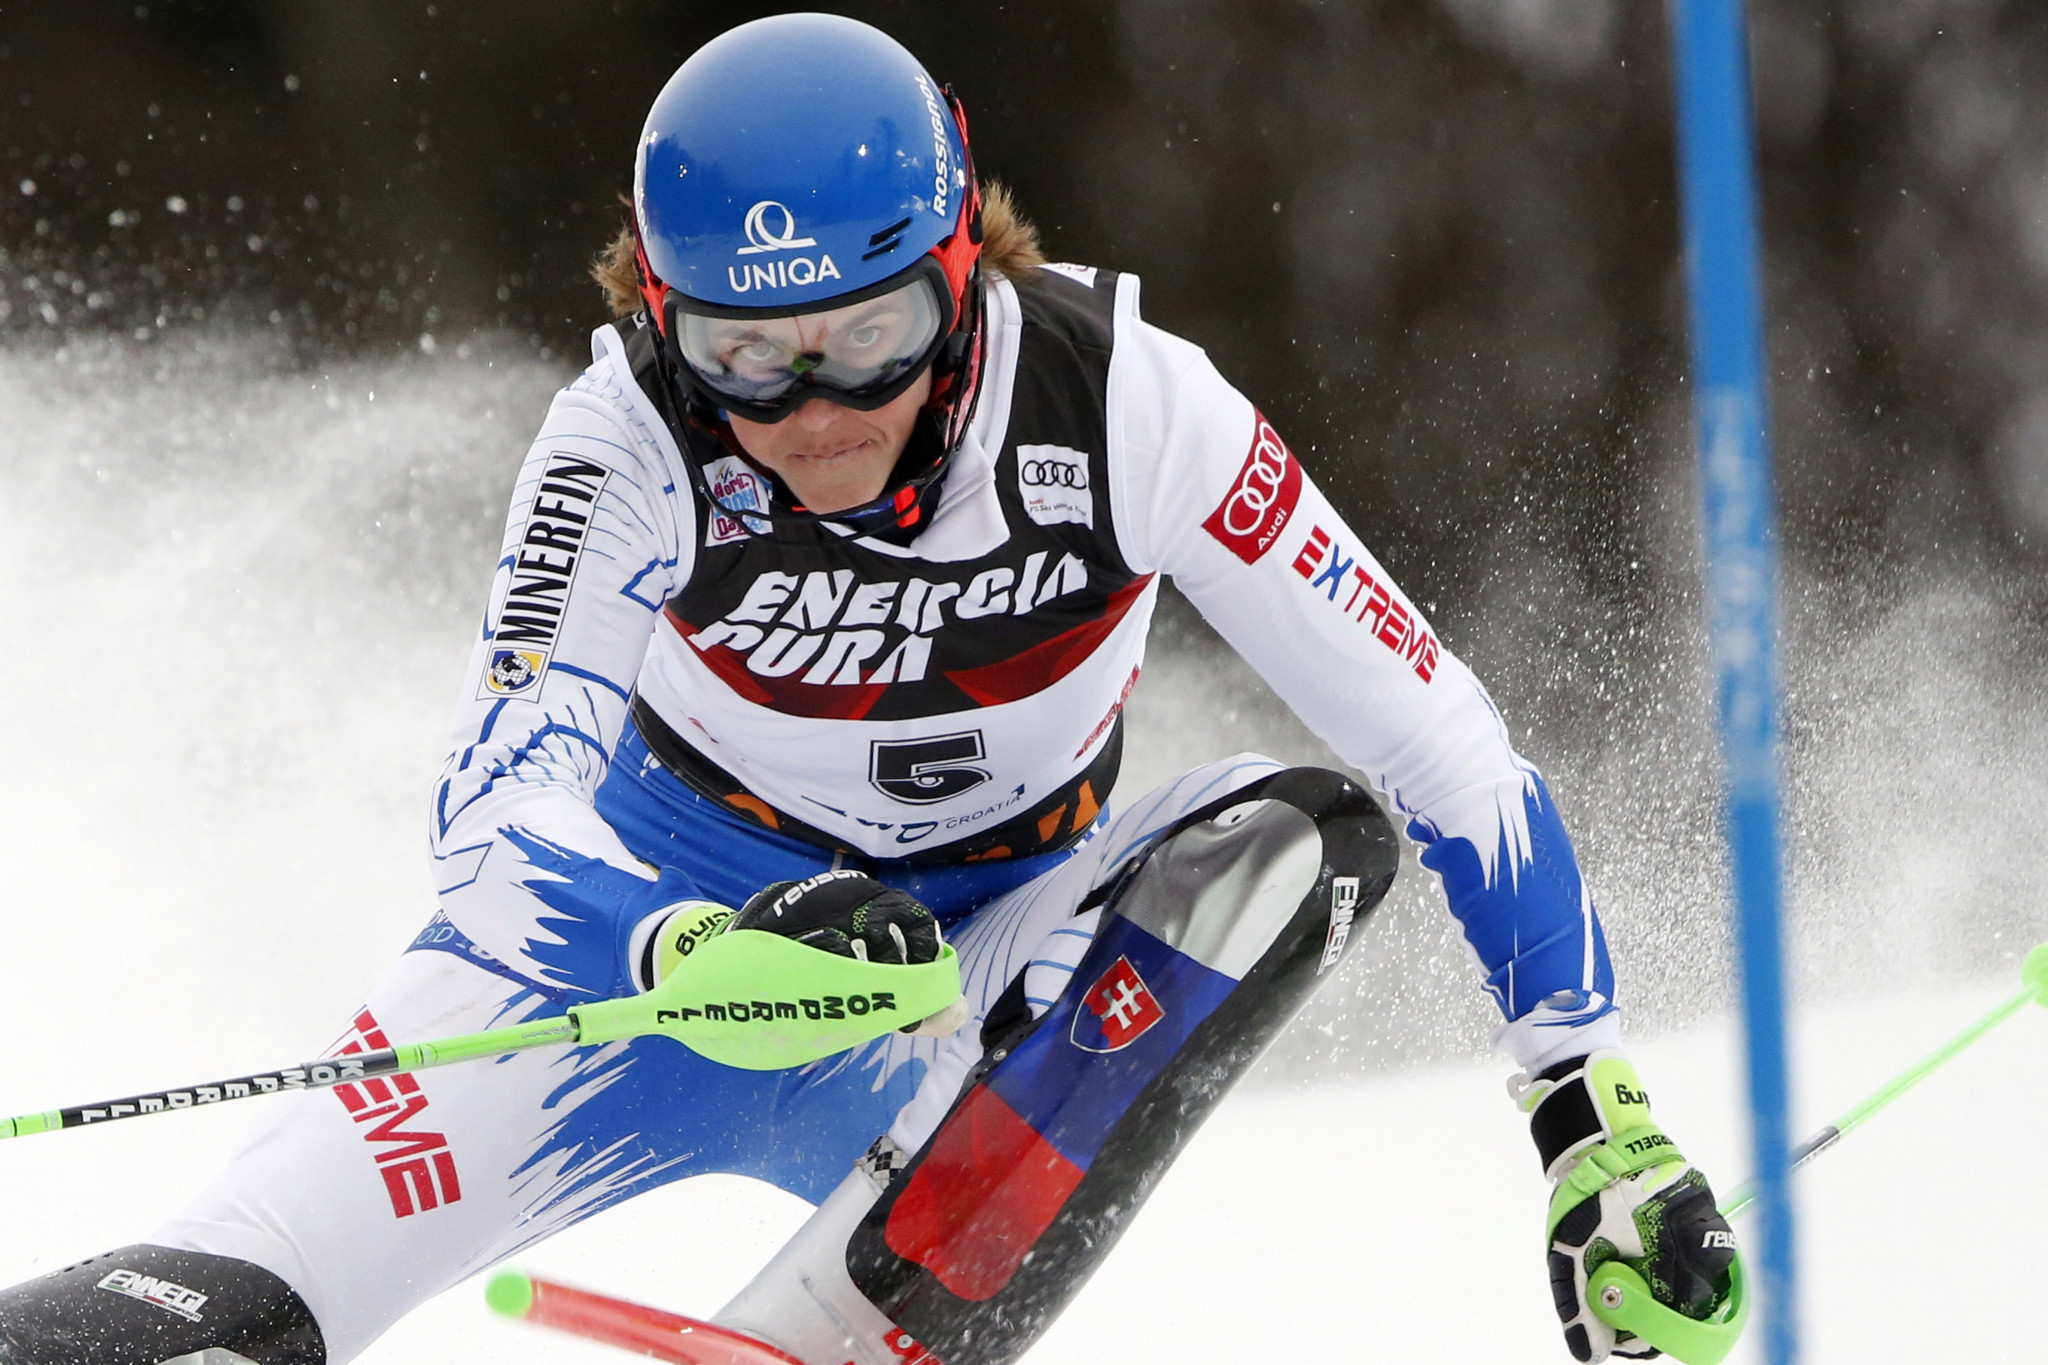 Petra Vlhova will hope to claim a victory to close the gap to Mikaela Shiffrin in the overall standings ©Getty Images